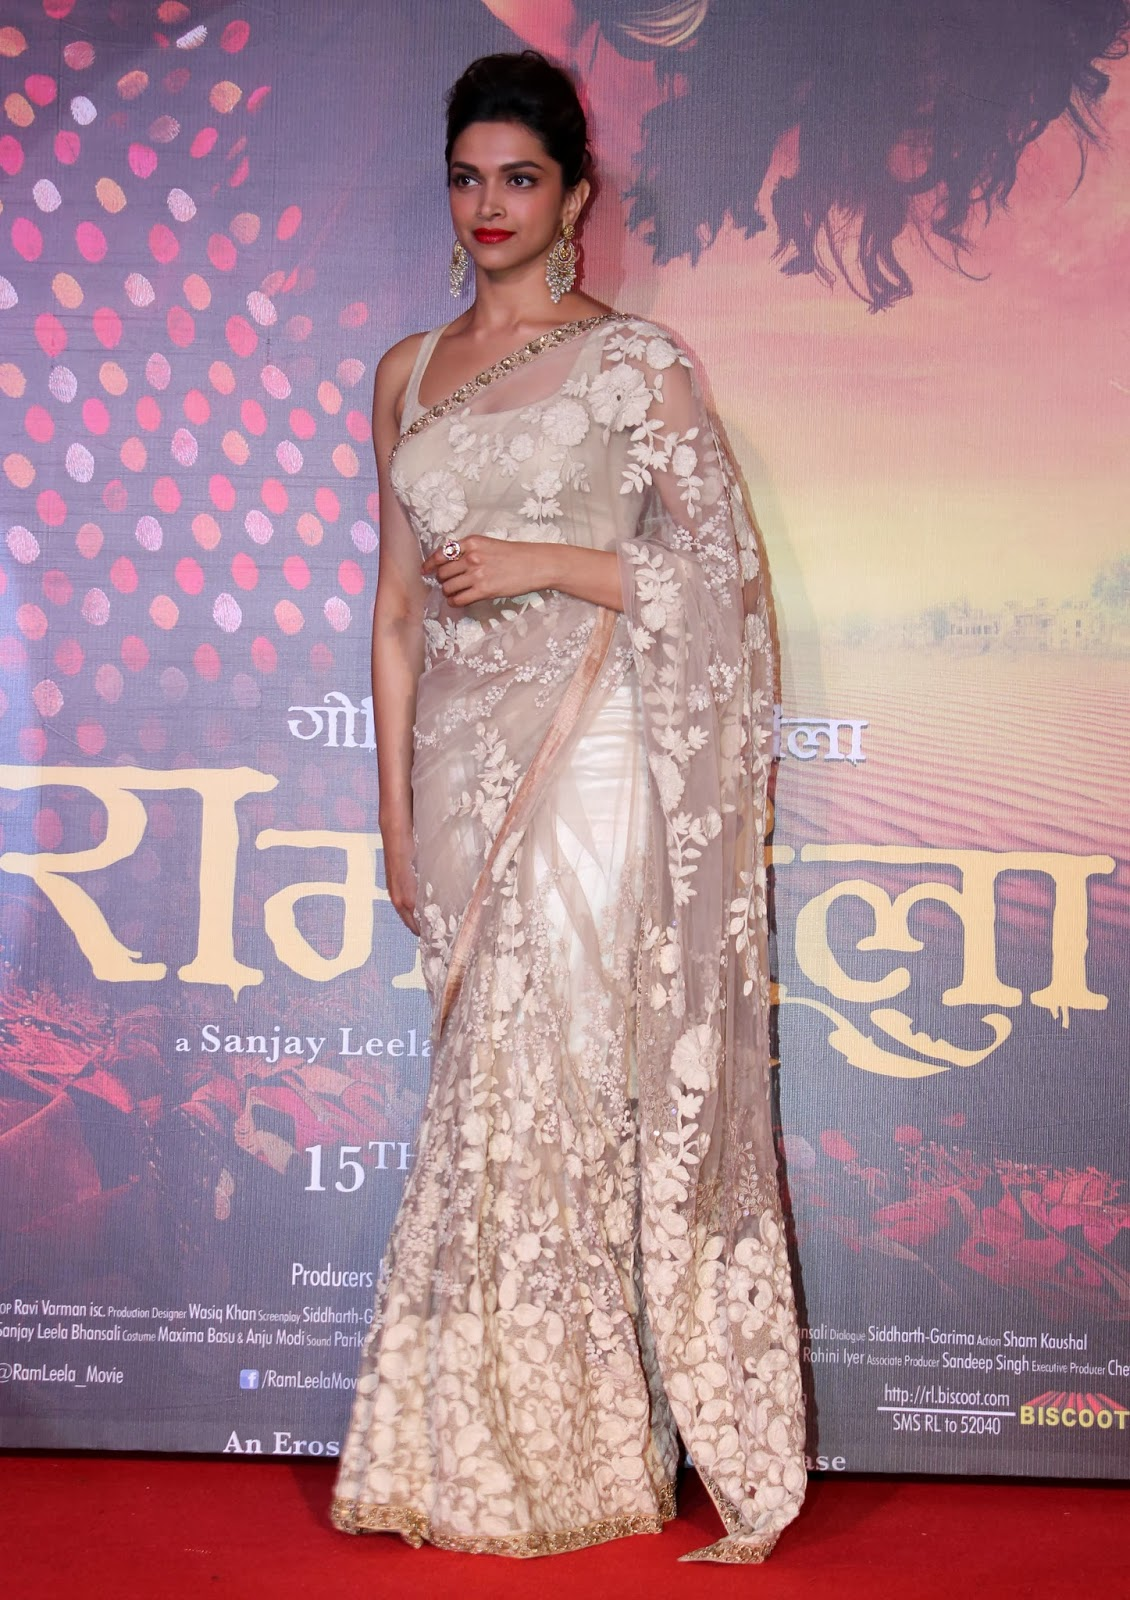 Bollywood Actress Deepika Padukone Hot Smiling Face In White Saree